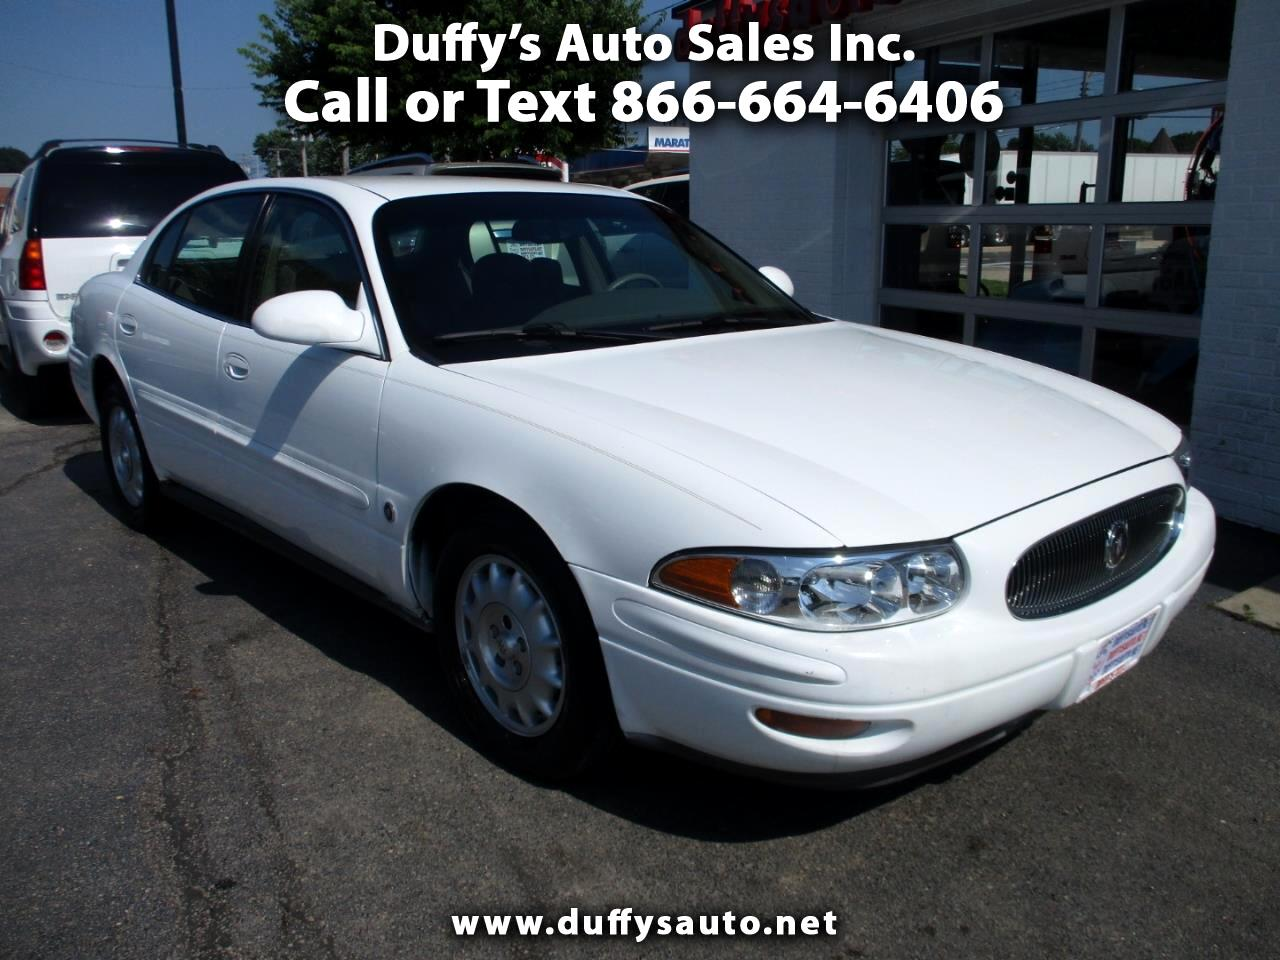 2000 Buick LeSabre 4dr Sdn Limited